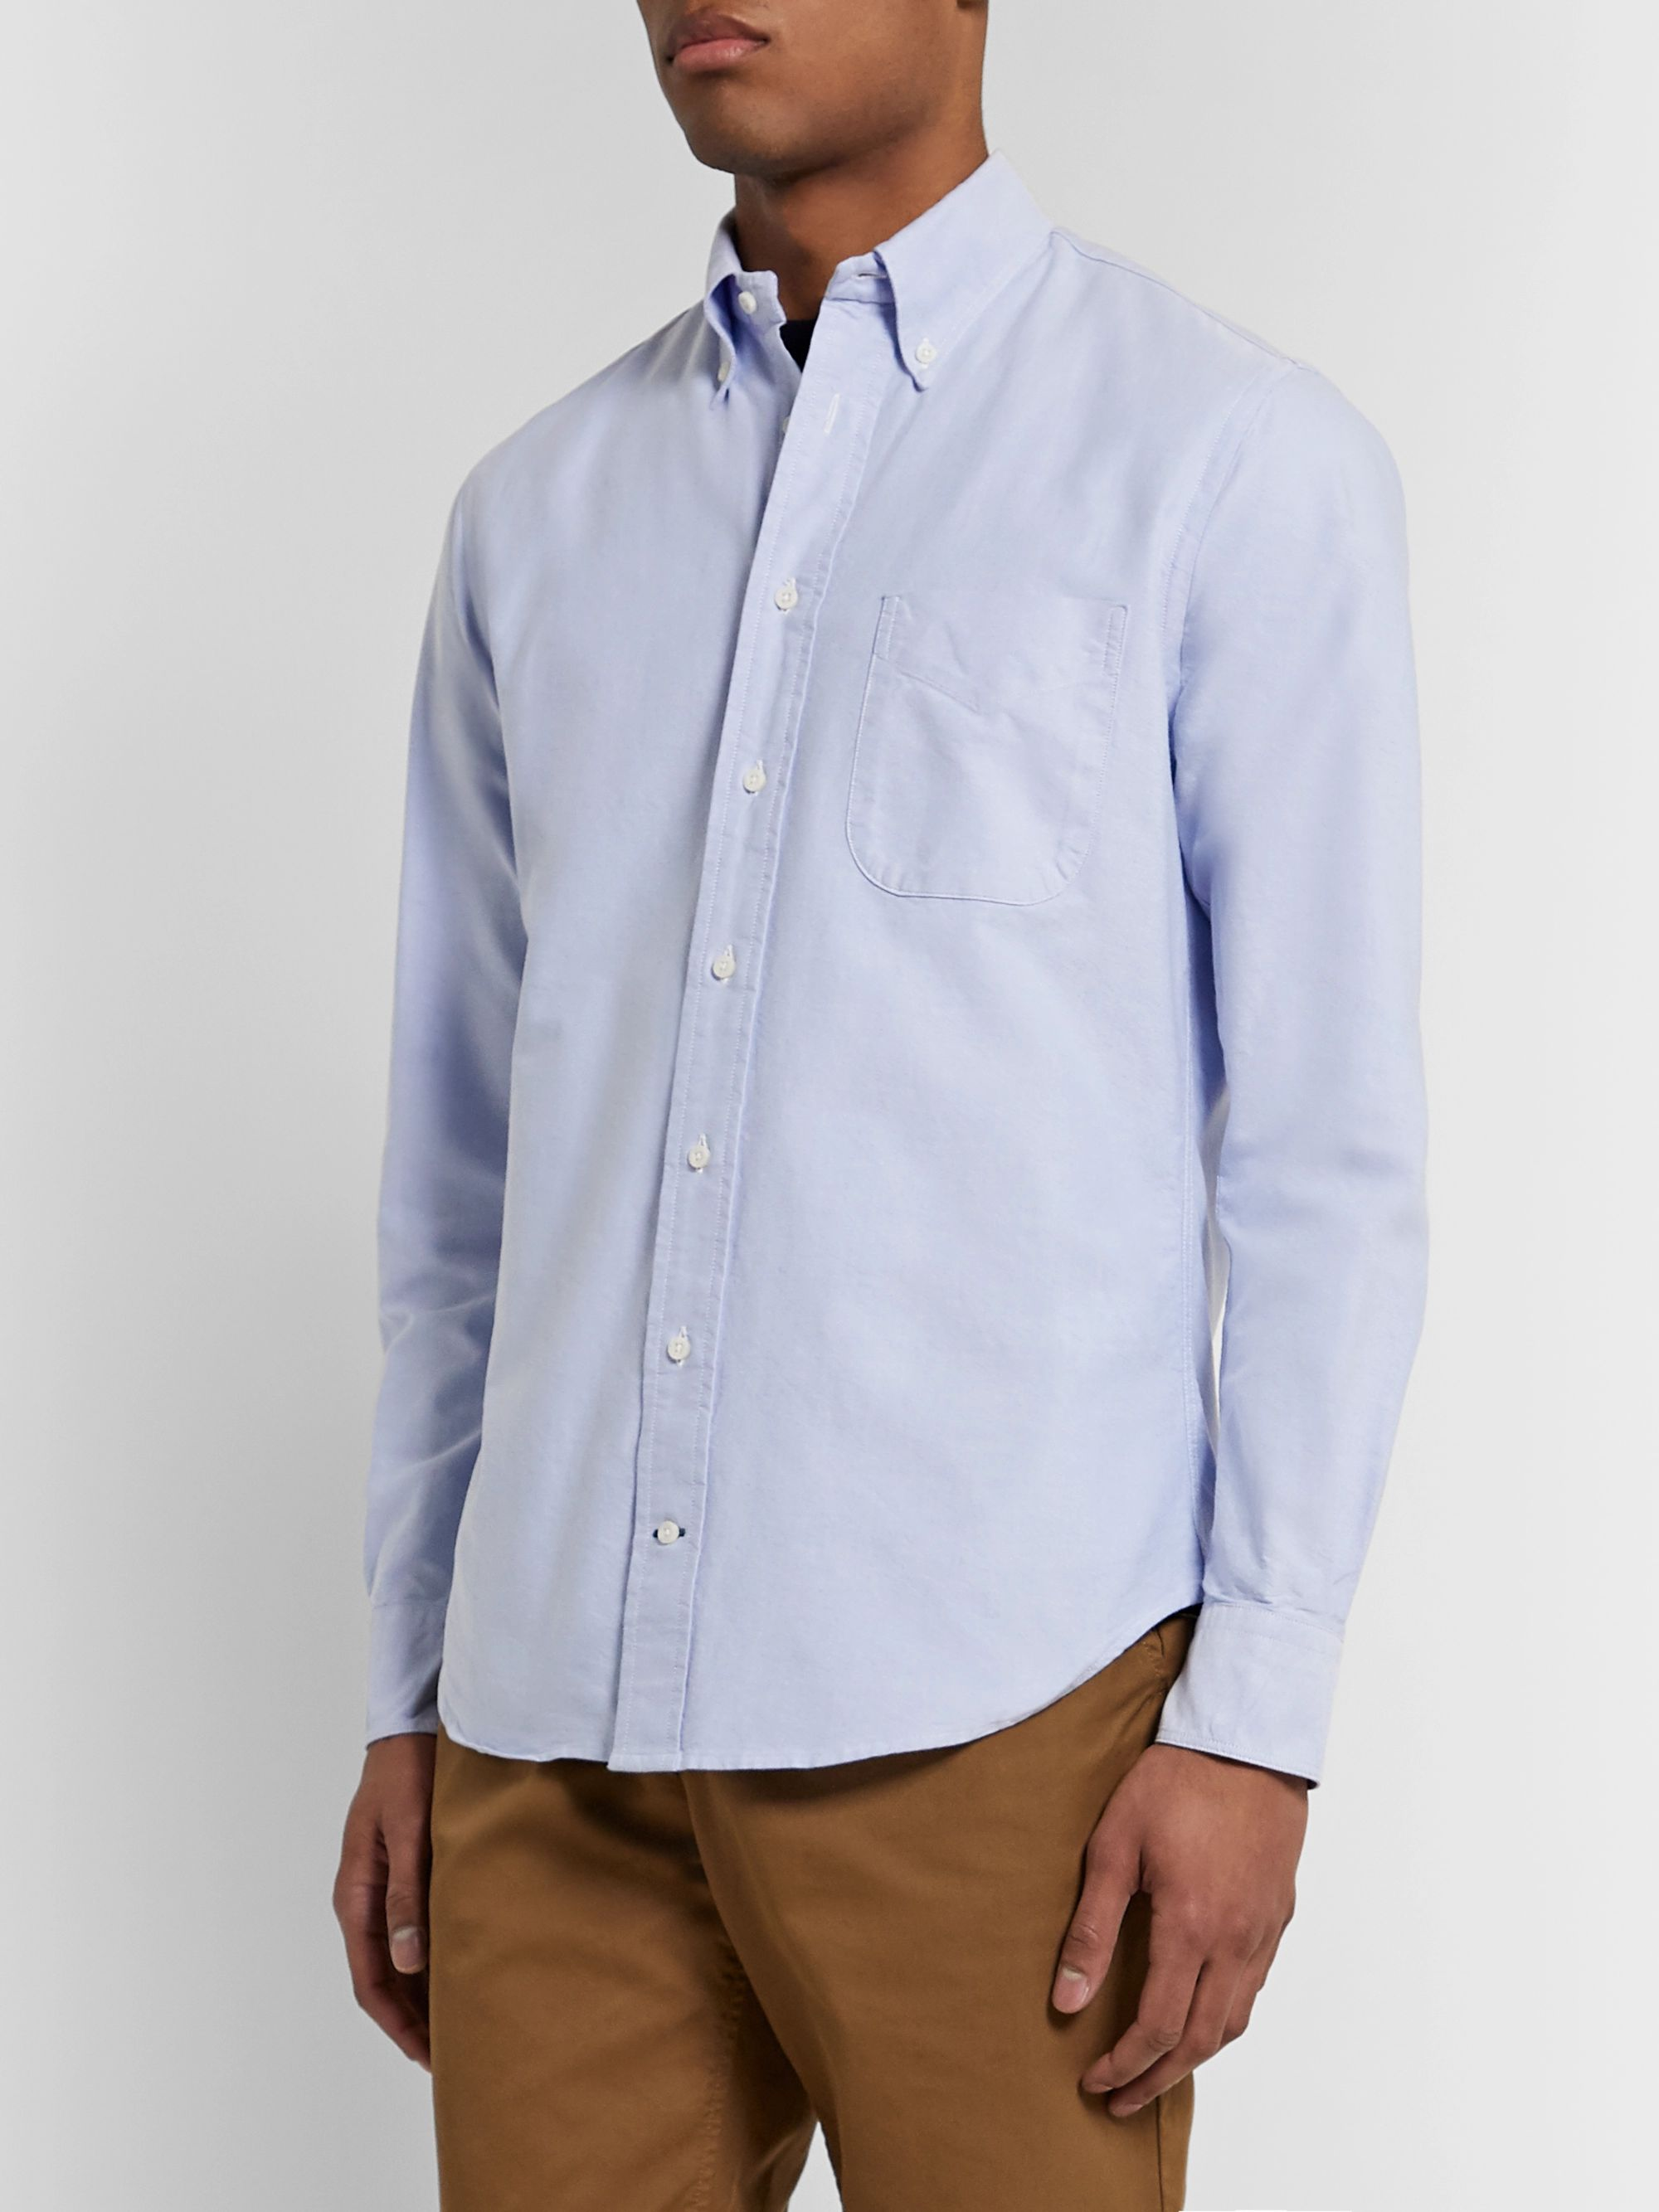 Gitman Vintage Button-Down Collar Cotton Oxford Shirt